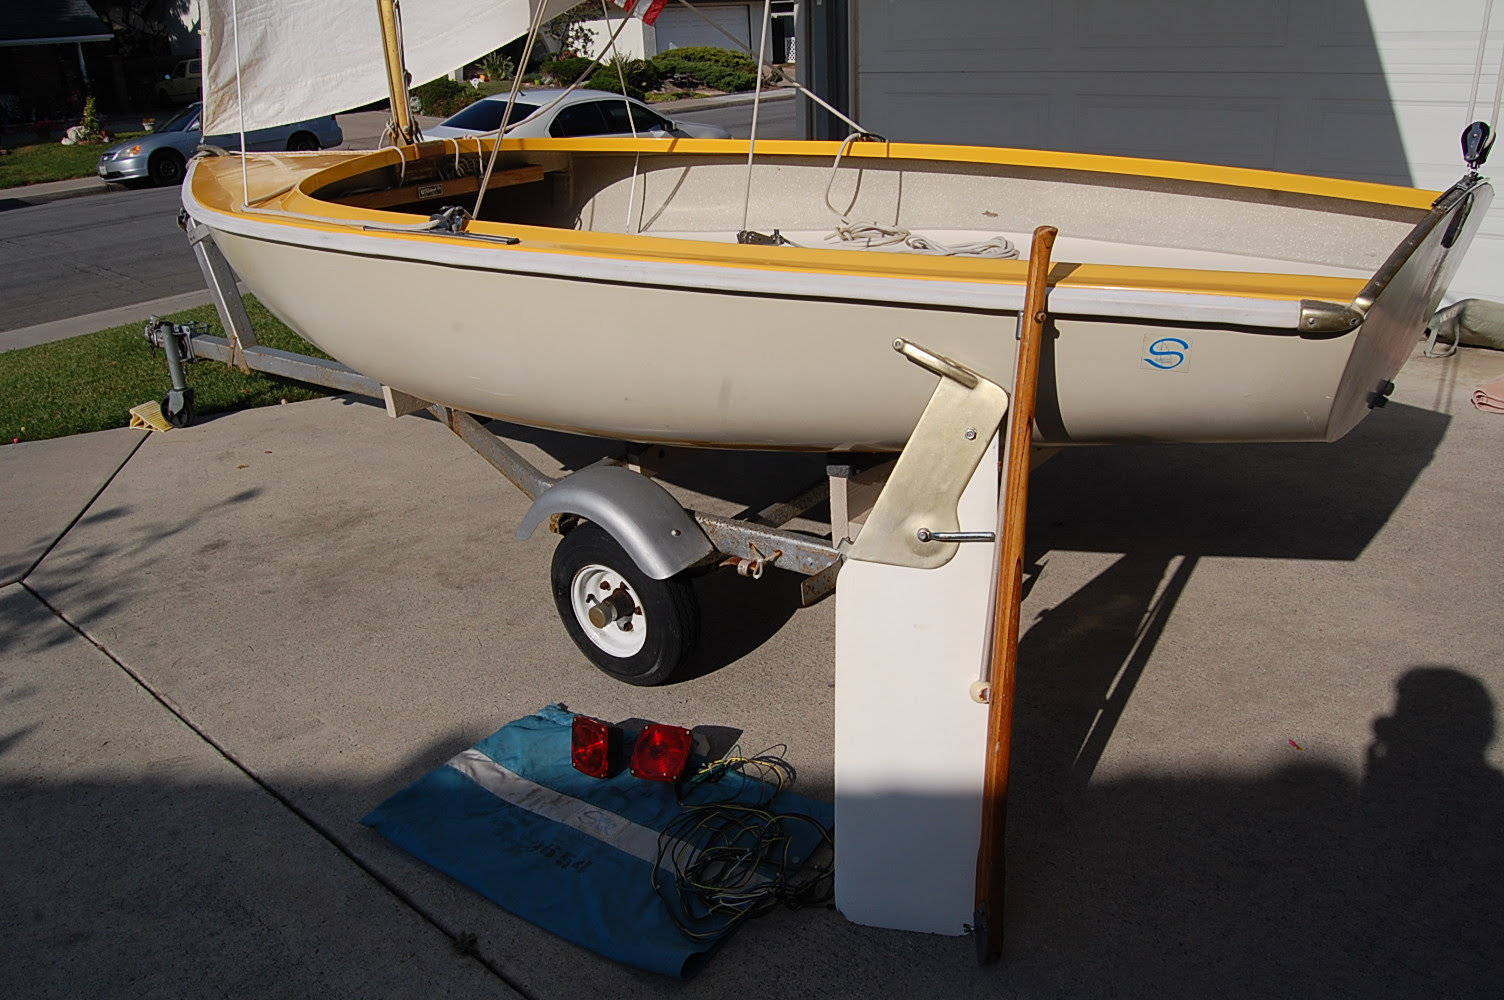 2014 FOR SALE: 1960's Lido 14 with Trailer